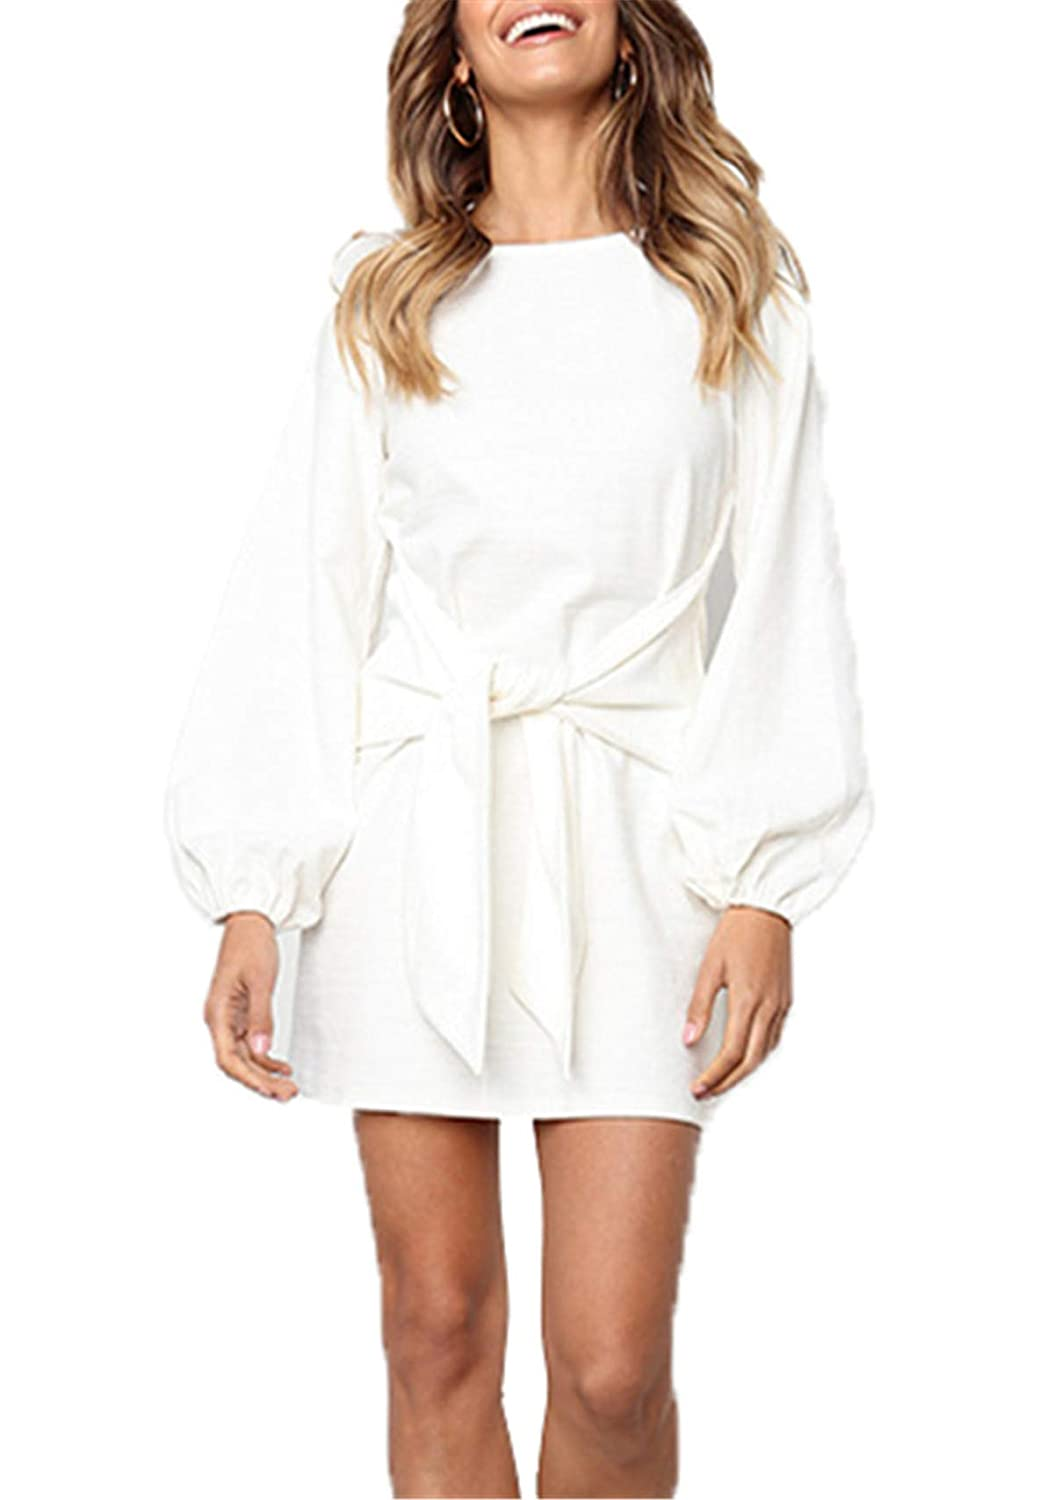 e95e25589a onlypuff Tie Front Dress for Women Puff Sleeve Tunic Casual Round Neck  Belted White M at Amazon Women s Clothing store